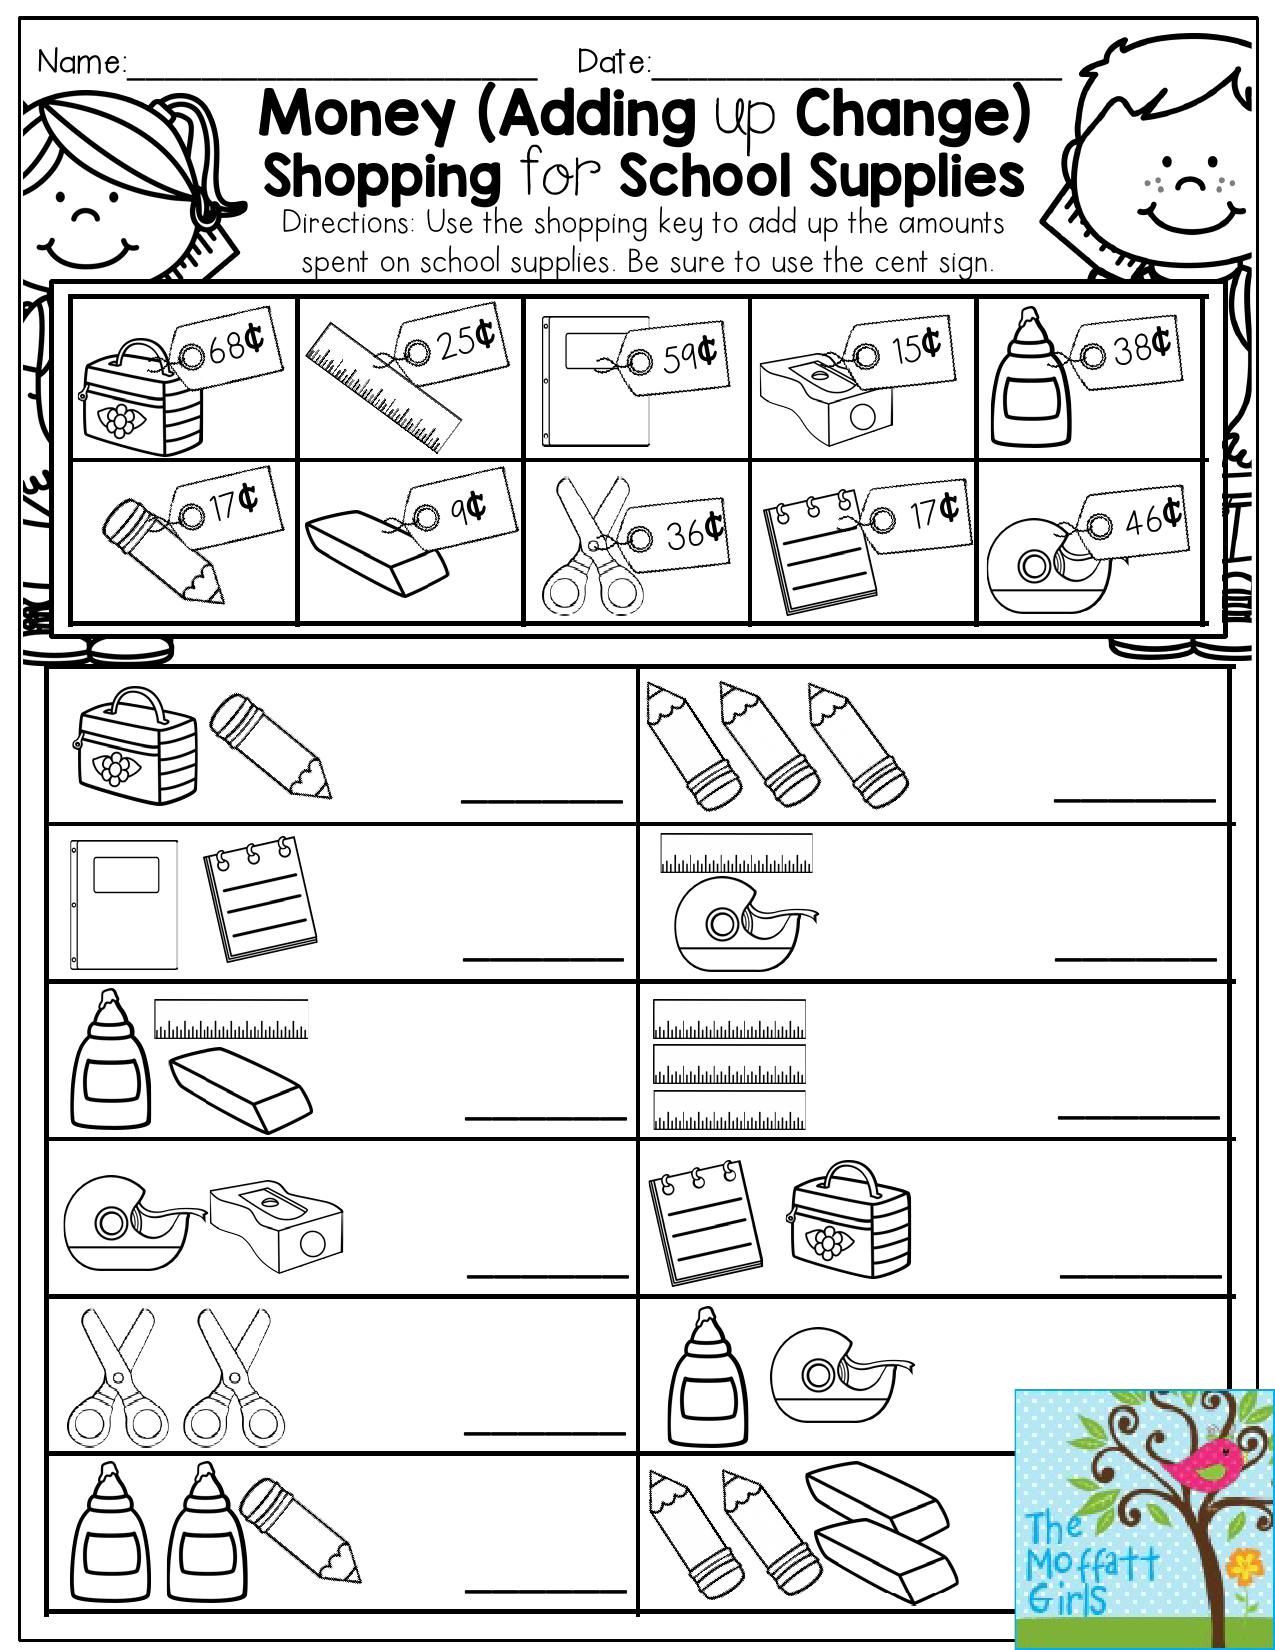 Shopping Math Worksheet Money Adding Up Change Shopping for School Supplies Fun